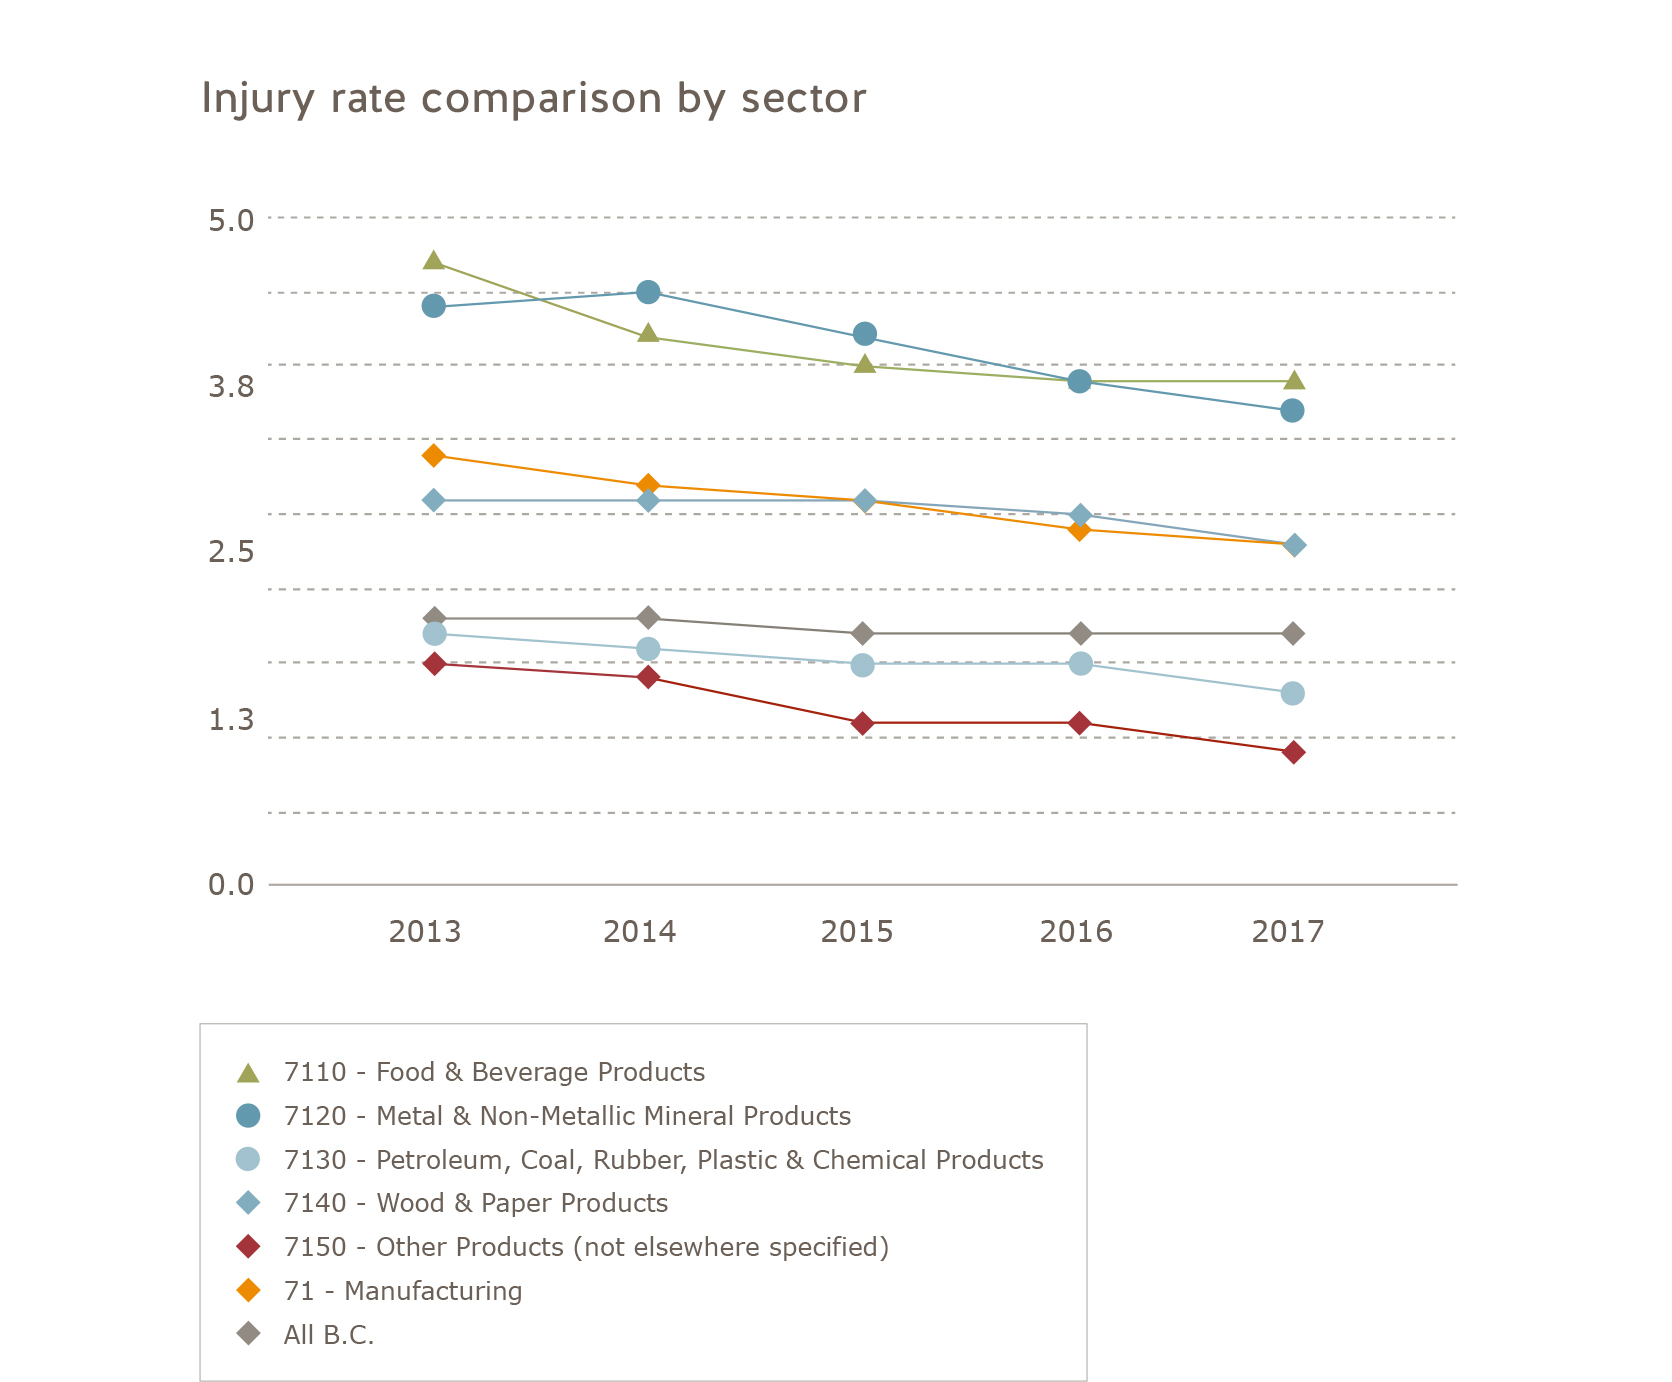 Injury rate comparison manufacturing sector 2013 to 2017. Food and beverage products: 2013 = 4.7, 2014 = 4.2, 2015 = 4.0, 2016 = 3.9, 2017 = 3.9. Metal and non-metallic mineral products: 2013 = 4.4, 2014 = 4.5, 2015 = 4.2, 2016 = 3.9, 2017 = 3.7. Petroleum, coal, rubber, plastic, and chemical products: 2013 = 2.2, 2014 = 2.1, 2015 = 2.0, 2016 = 2.0, 2017 = 1.8. Wood and paper products: 2013 = 3.1, 2014 = 3.1, 2015 = 3.1, 2016 = 3.0, 2017 = 2.8, Other products (not elsewhere specified): 2013 = 2.0, 2014 = 1.9, 2015 = 1.6, 2016 = 1.6, 2017 = 1.4, Manufacturing: 2013 = 3.4, 2014 = 3.2, 2015 = 3.1, 2016 = 2.9, 2017 = 2.8, All of B.C.: 2013 = 2.3, 2014 = 2.3, 2015 = 2.2, 2016 = 2.2, 2017 = 2.2.